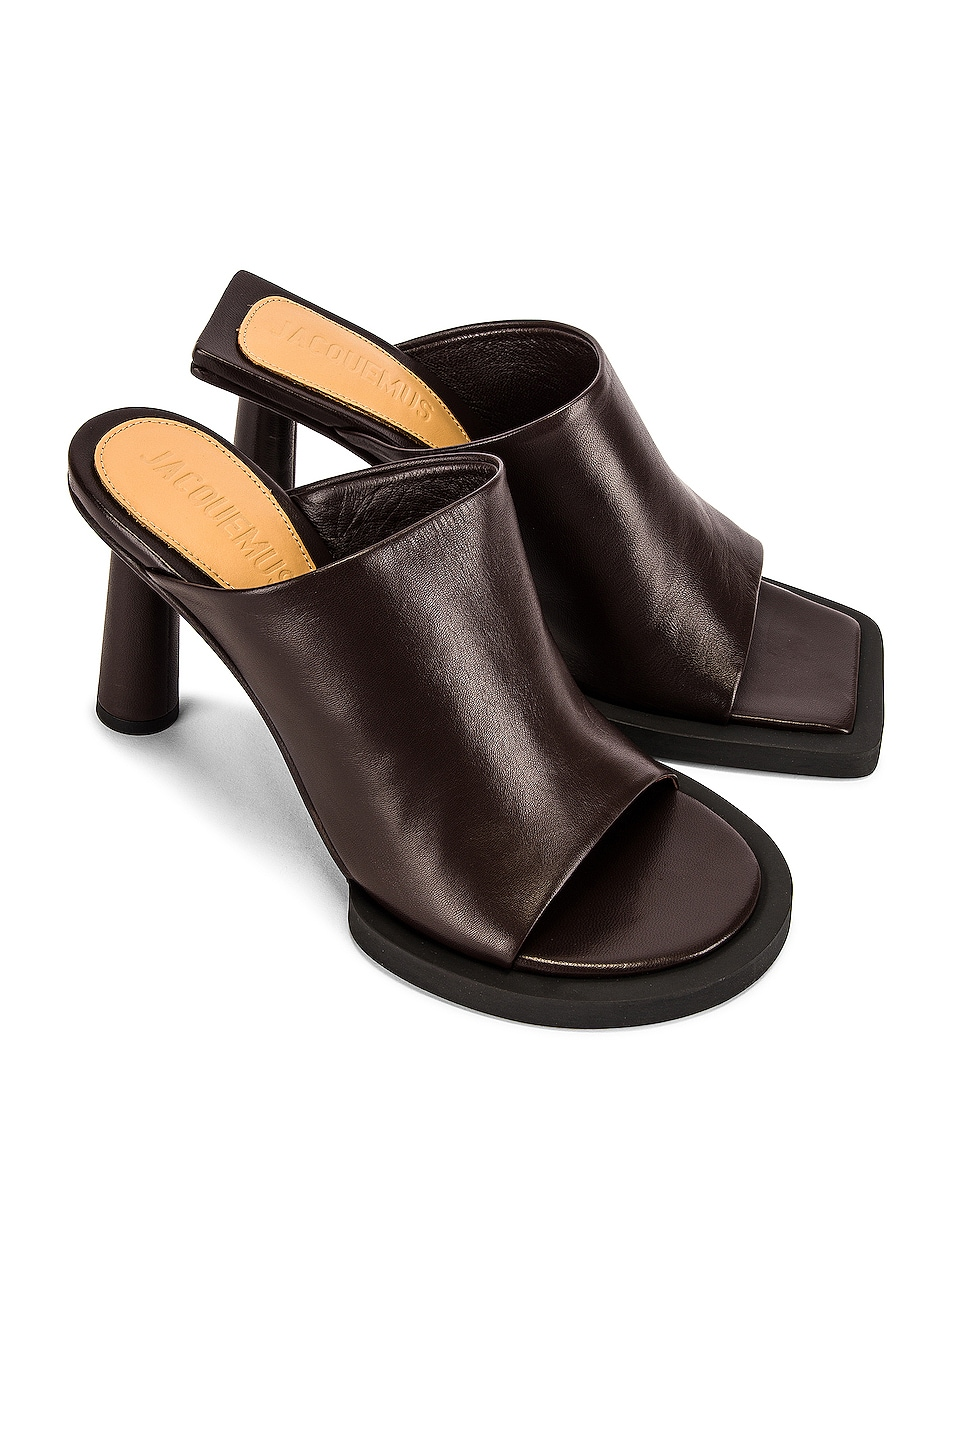 Image 1 of JACQUEMUS Les Mules Carre Rond in Dark Brown